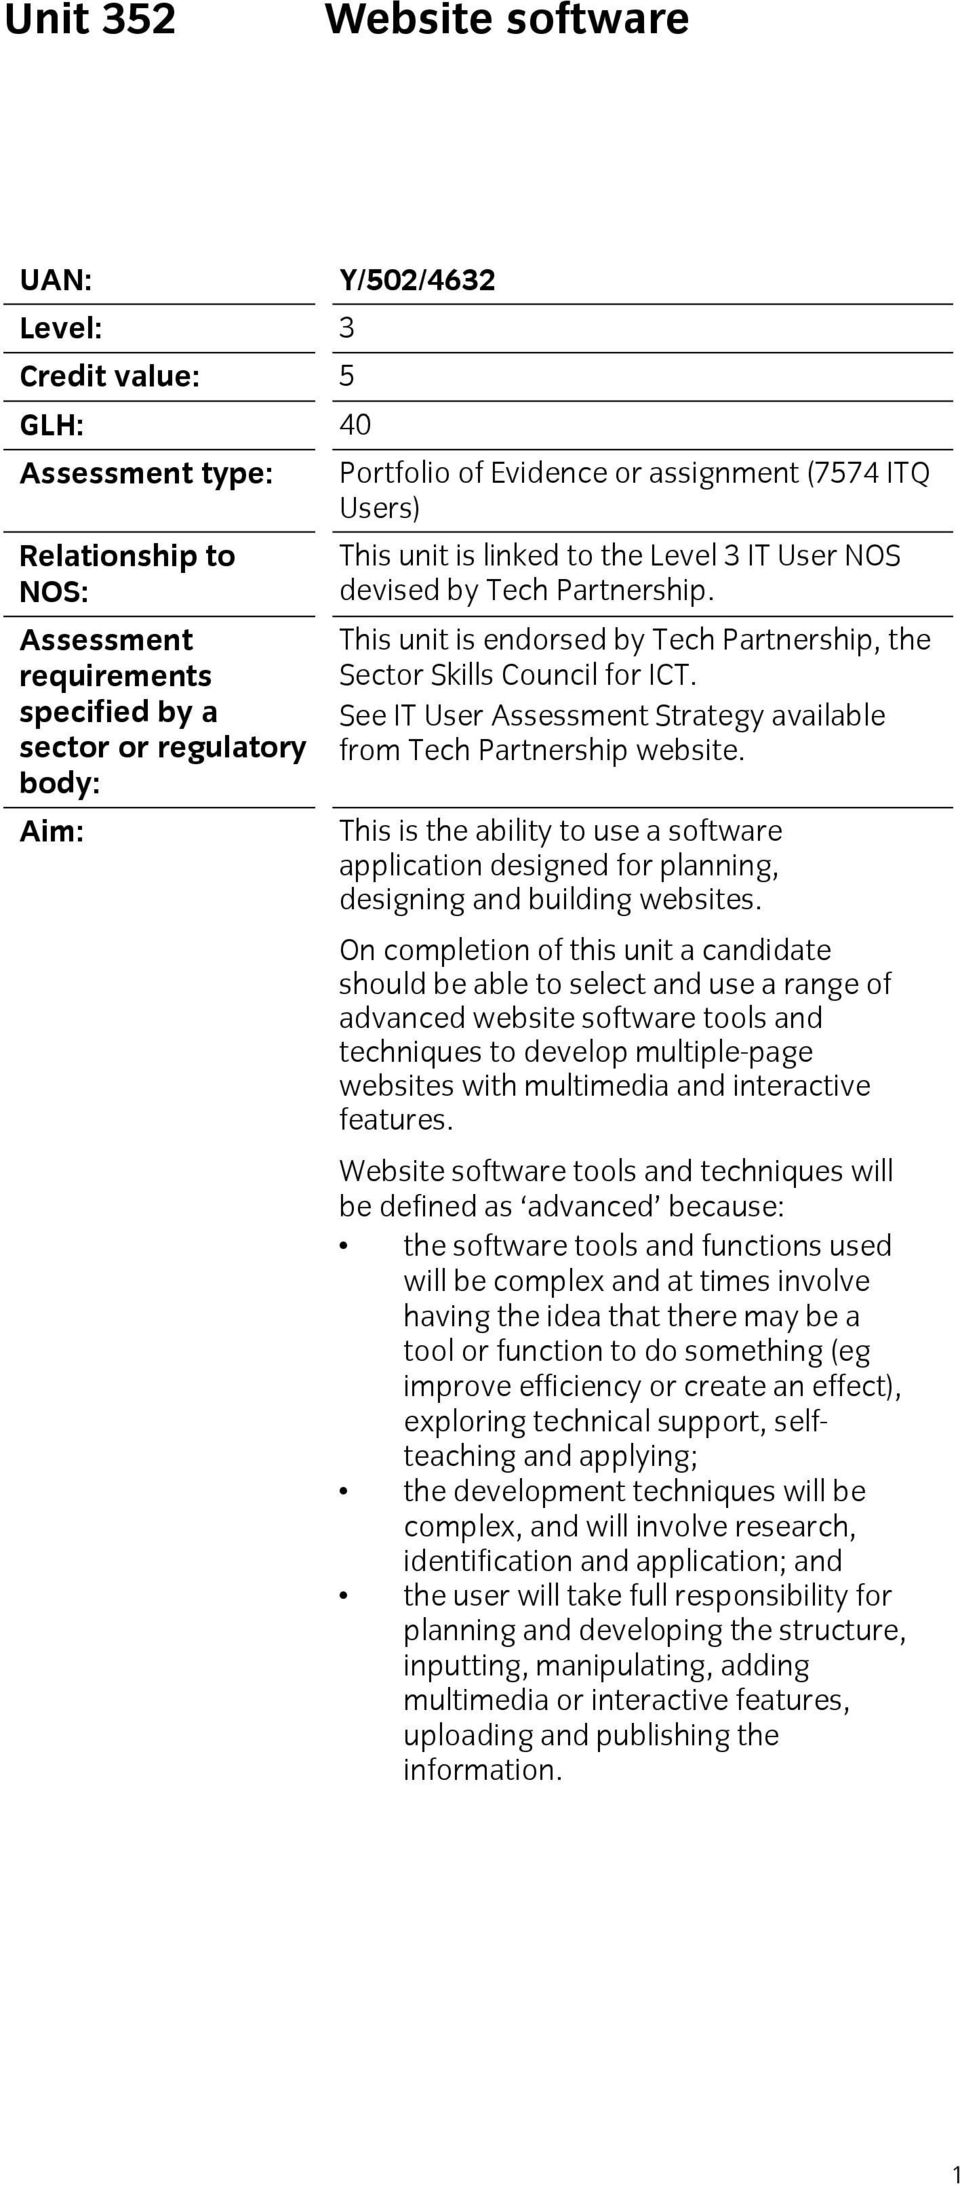 See IT User Assessment Strategy available from Tech Partnership website. This is the ability to use a software application designed for planning, designing and building websites.